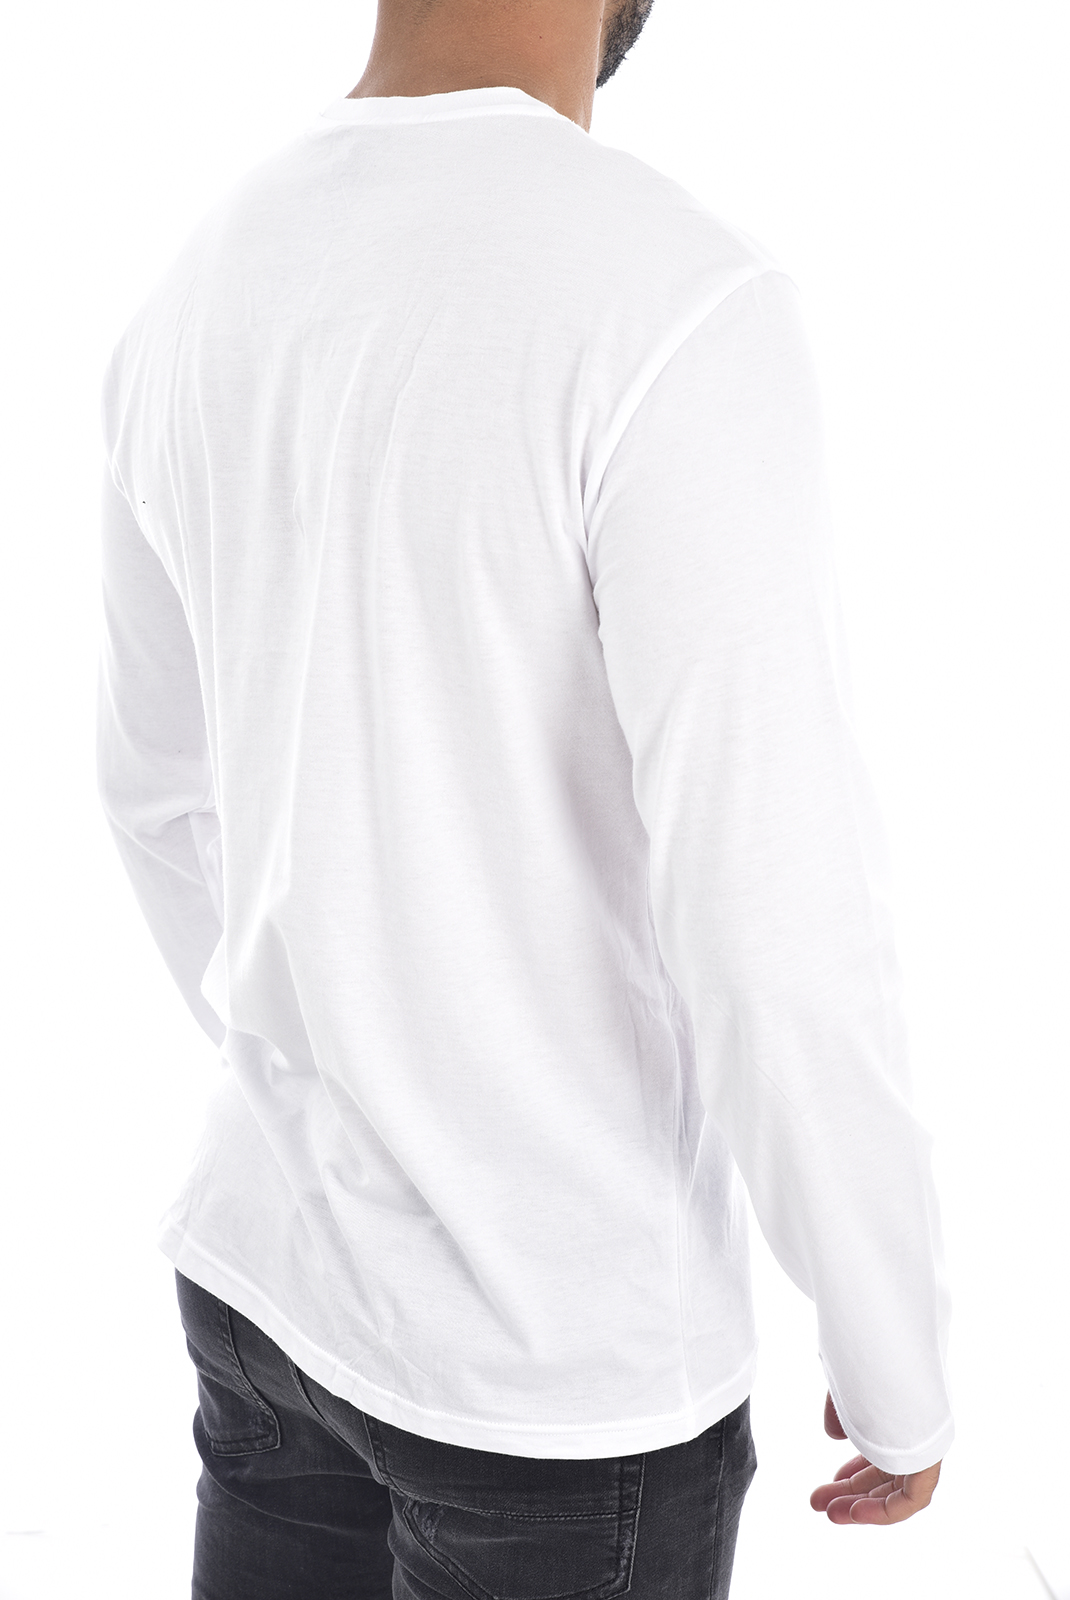 T-S manches longues  Emporio armani 111287 9A578 010 BLANC